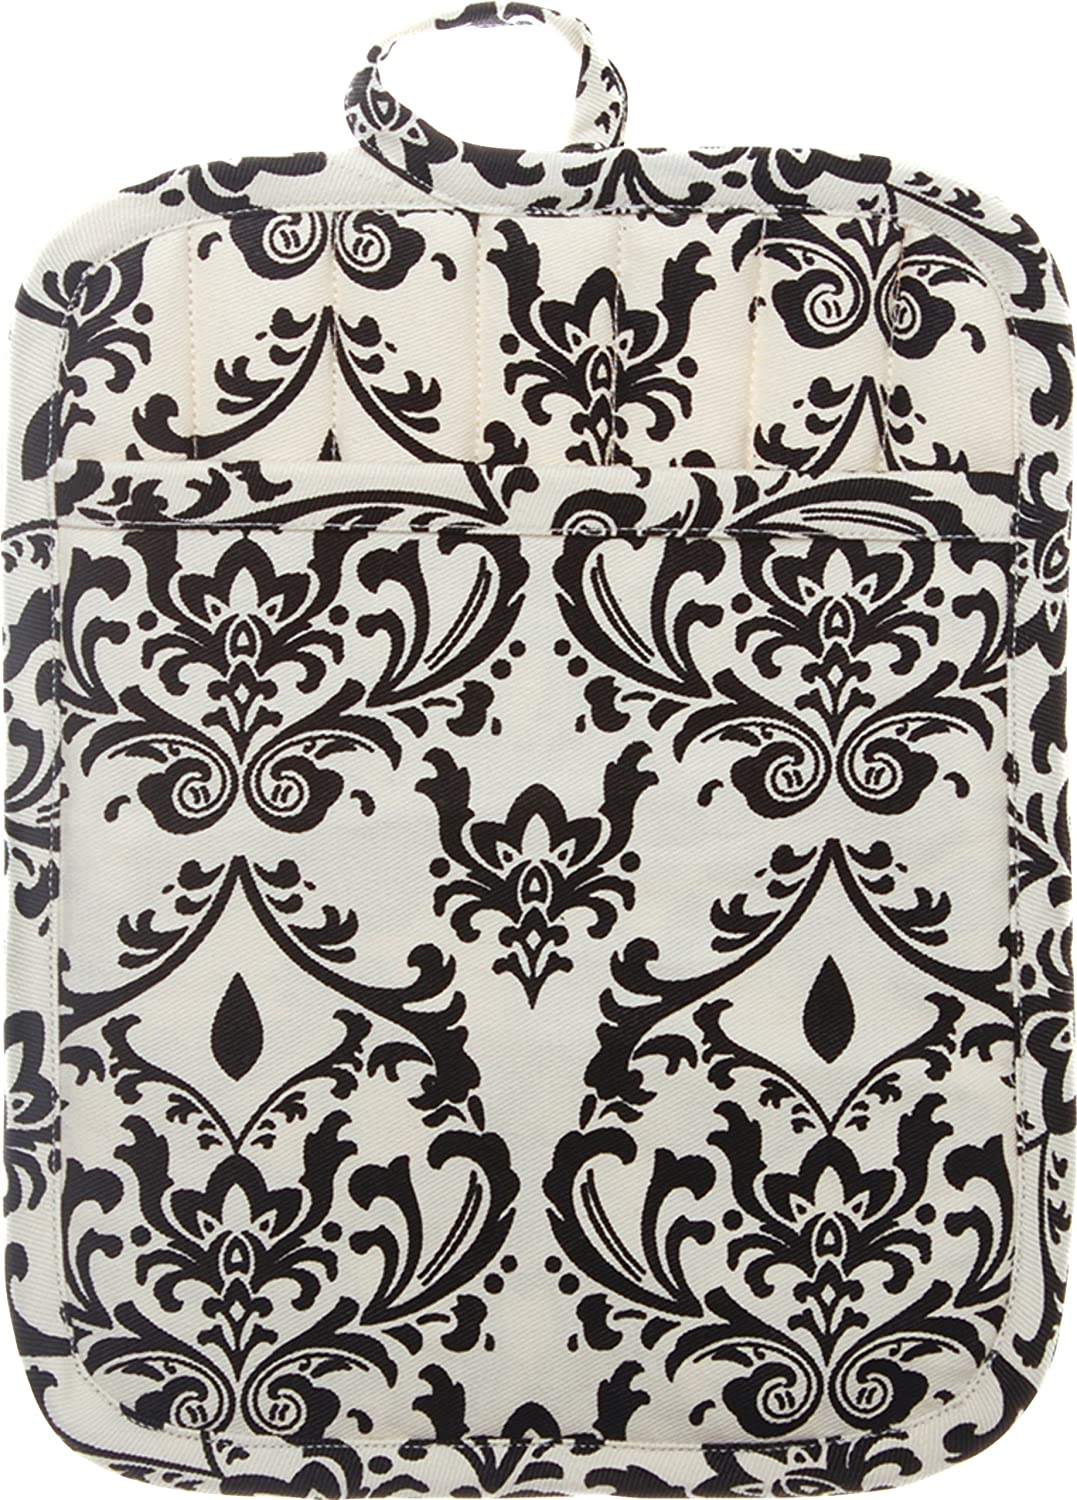 HIC Brands that Cook 02912 8 by 8-Inch Gourmet Classics Chandelier Scroll Motif Pot Mitt (Black/White)